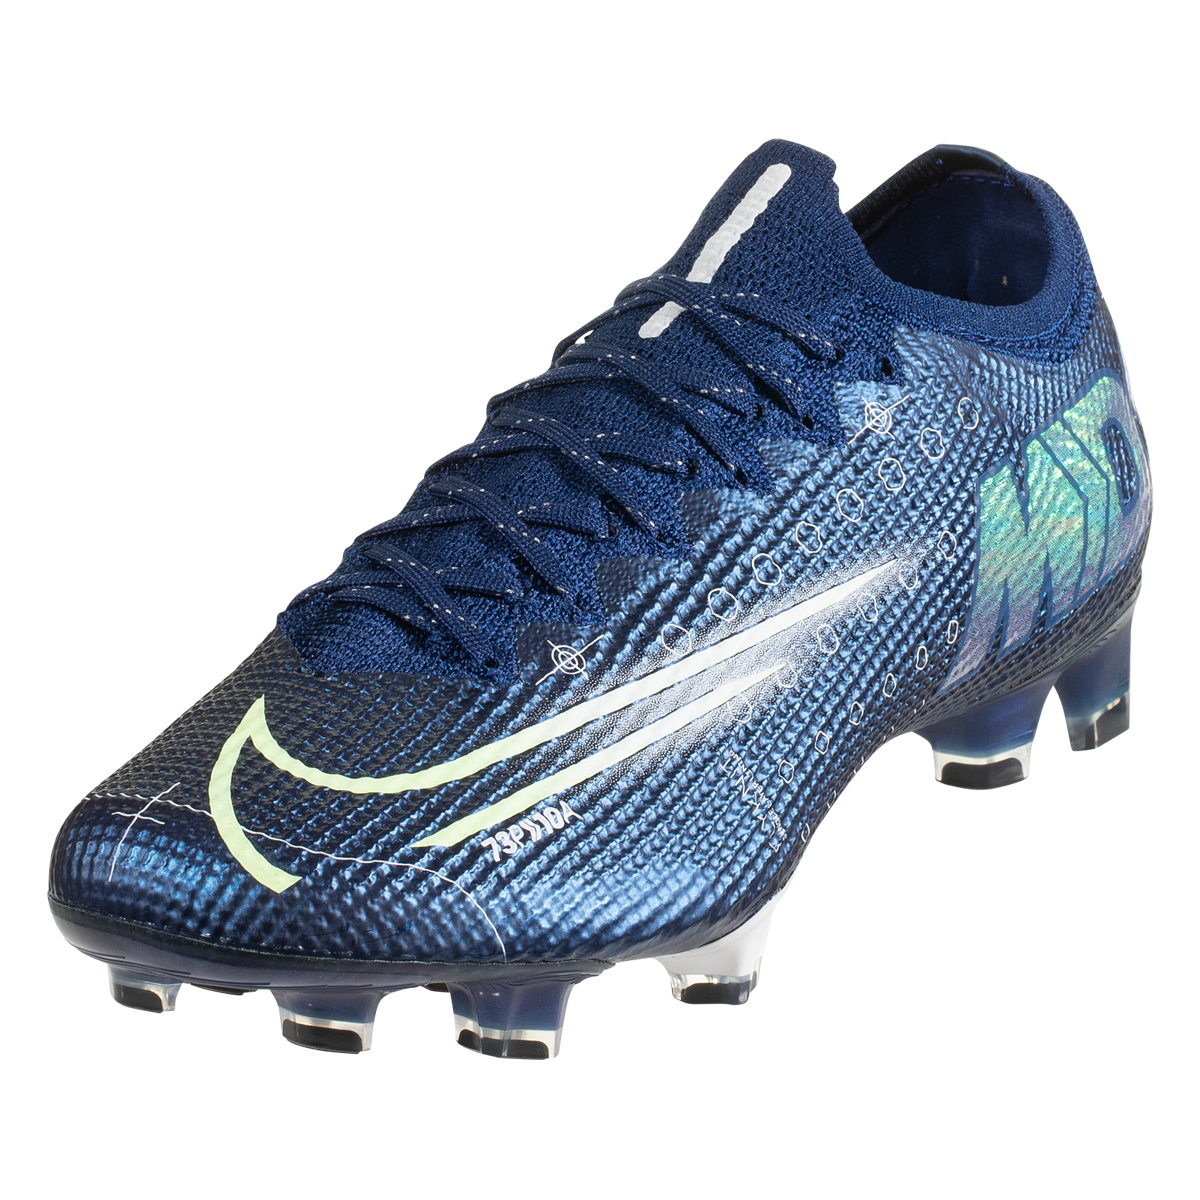 Nike Mercurial Vapor 13 Elite Fg Soccer Cleat Blue Void Metallic Silver White Black 7 Soccer Cleats Soccer Cleats Nike Mens Soccer Cleats